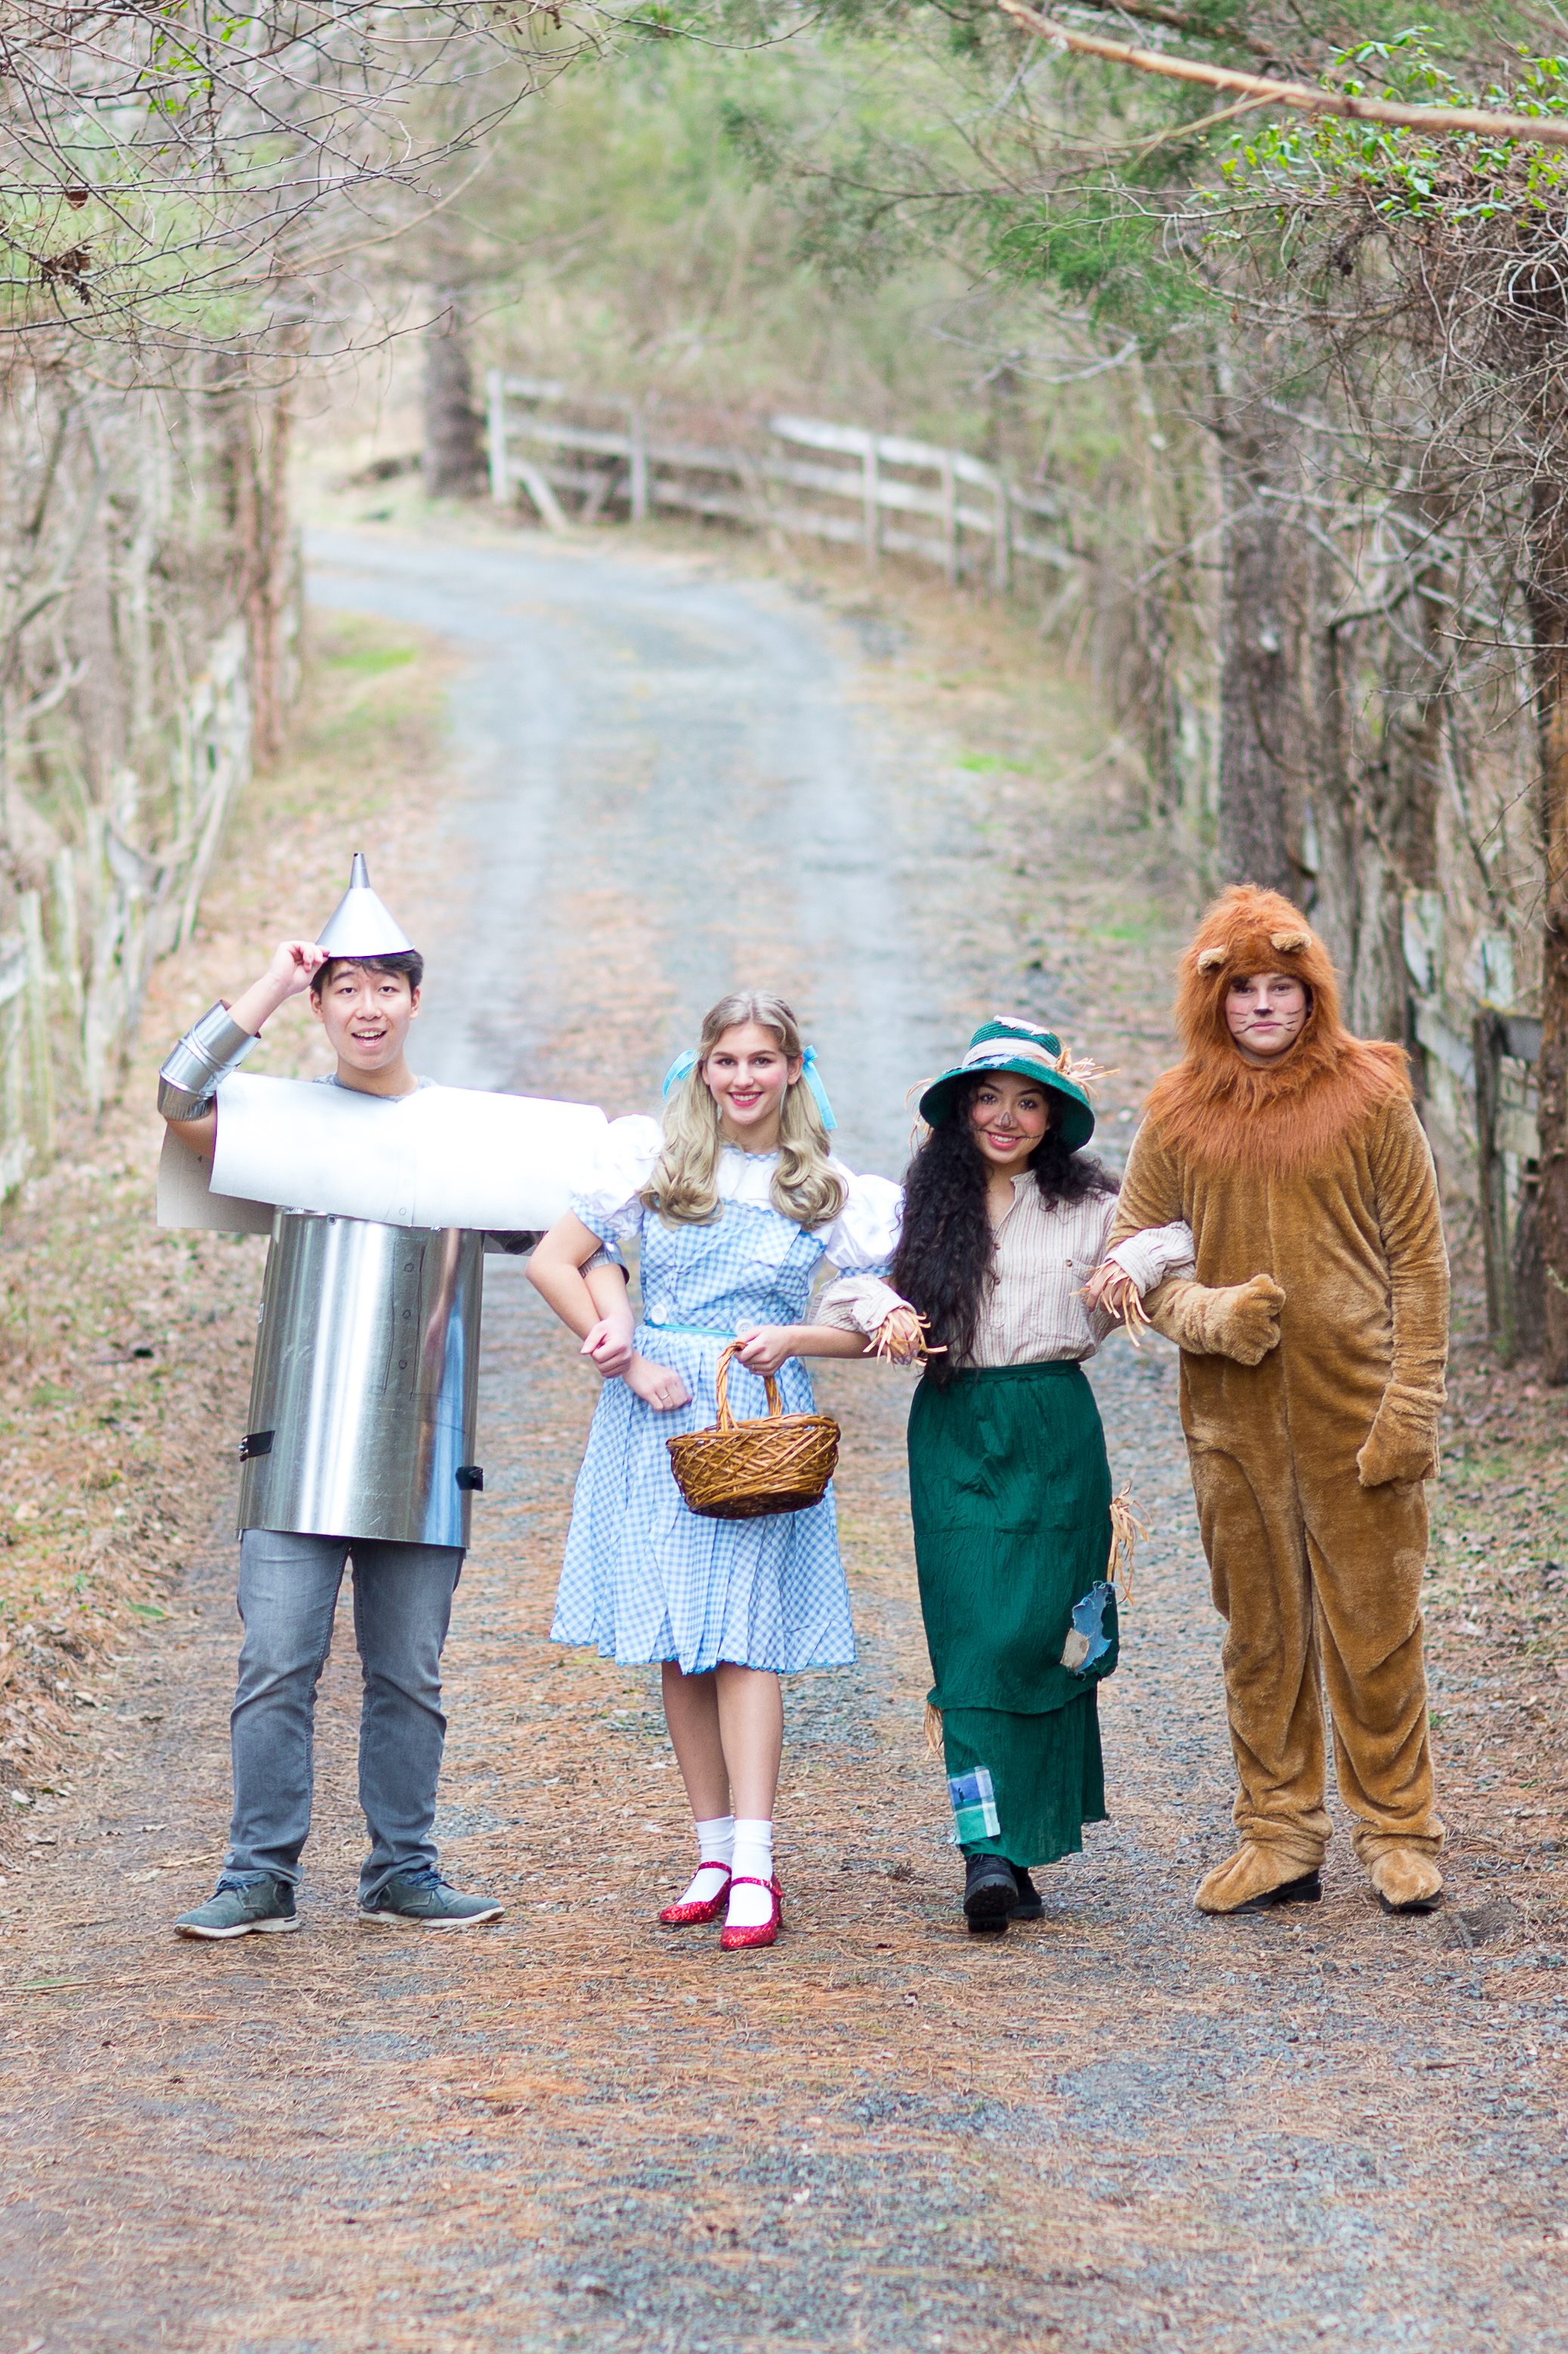 THE WIZARD OF OZ<span>2019 production of The Wizard of Oz. This 80th-Anniversary production goes over the rainbow.<span>